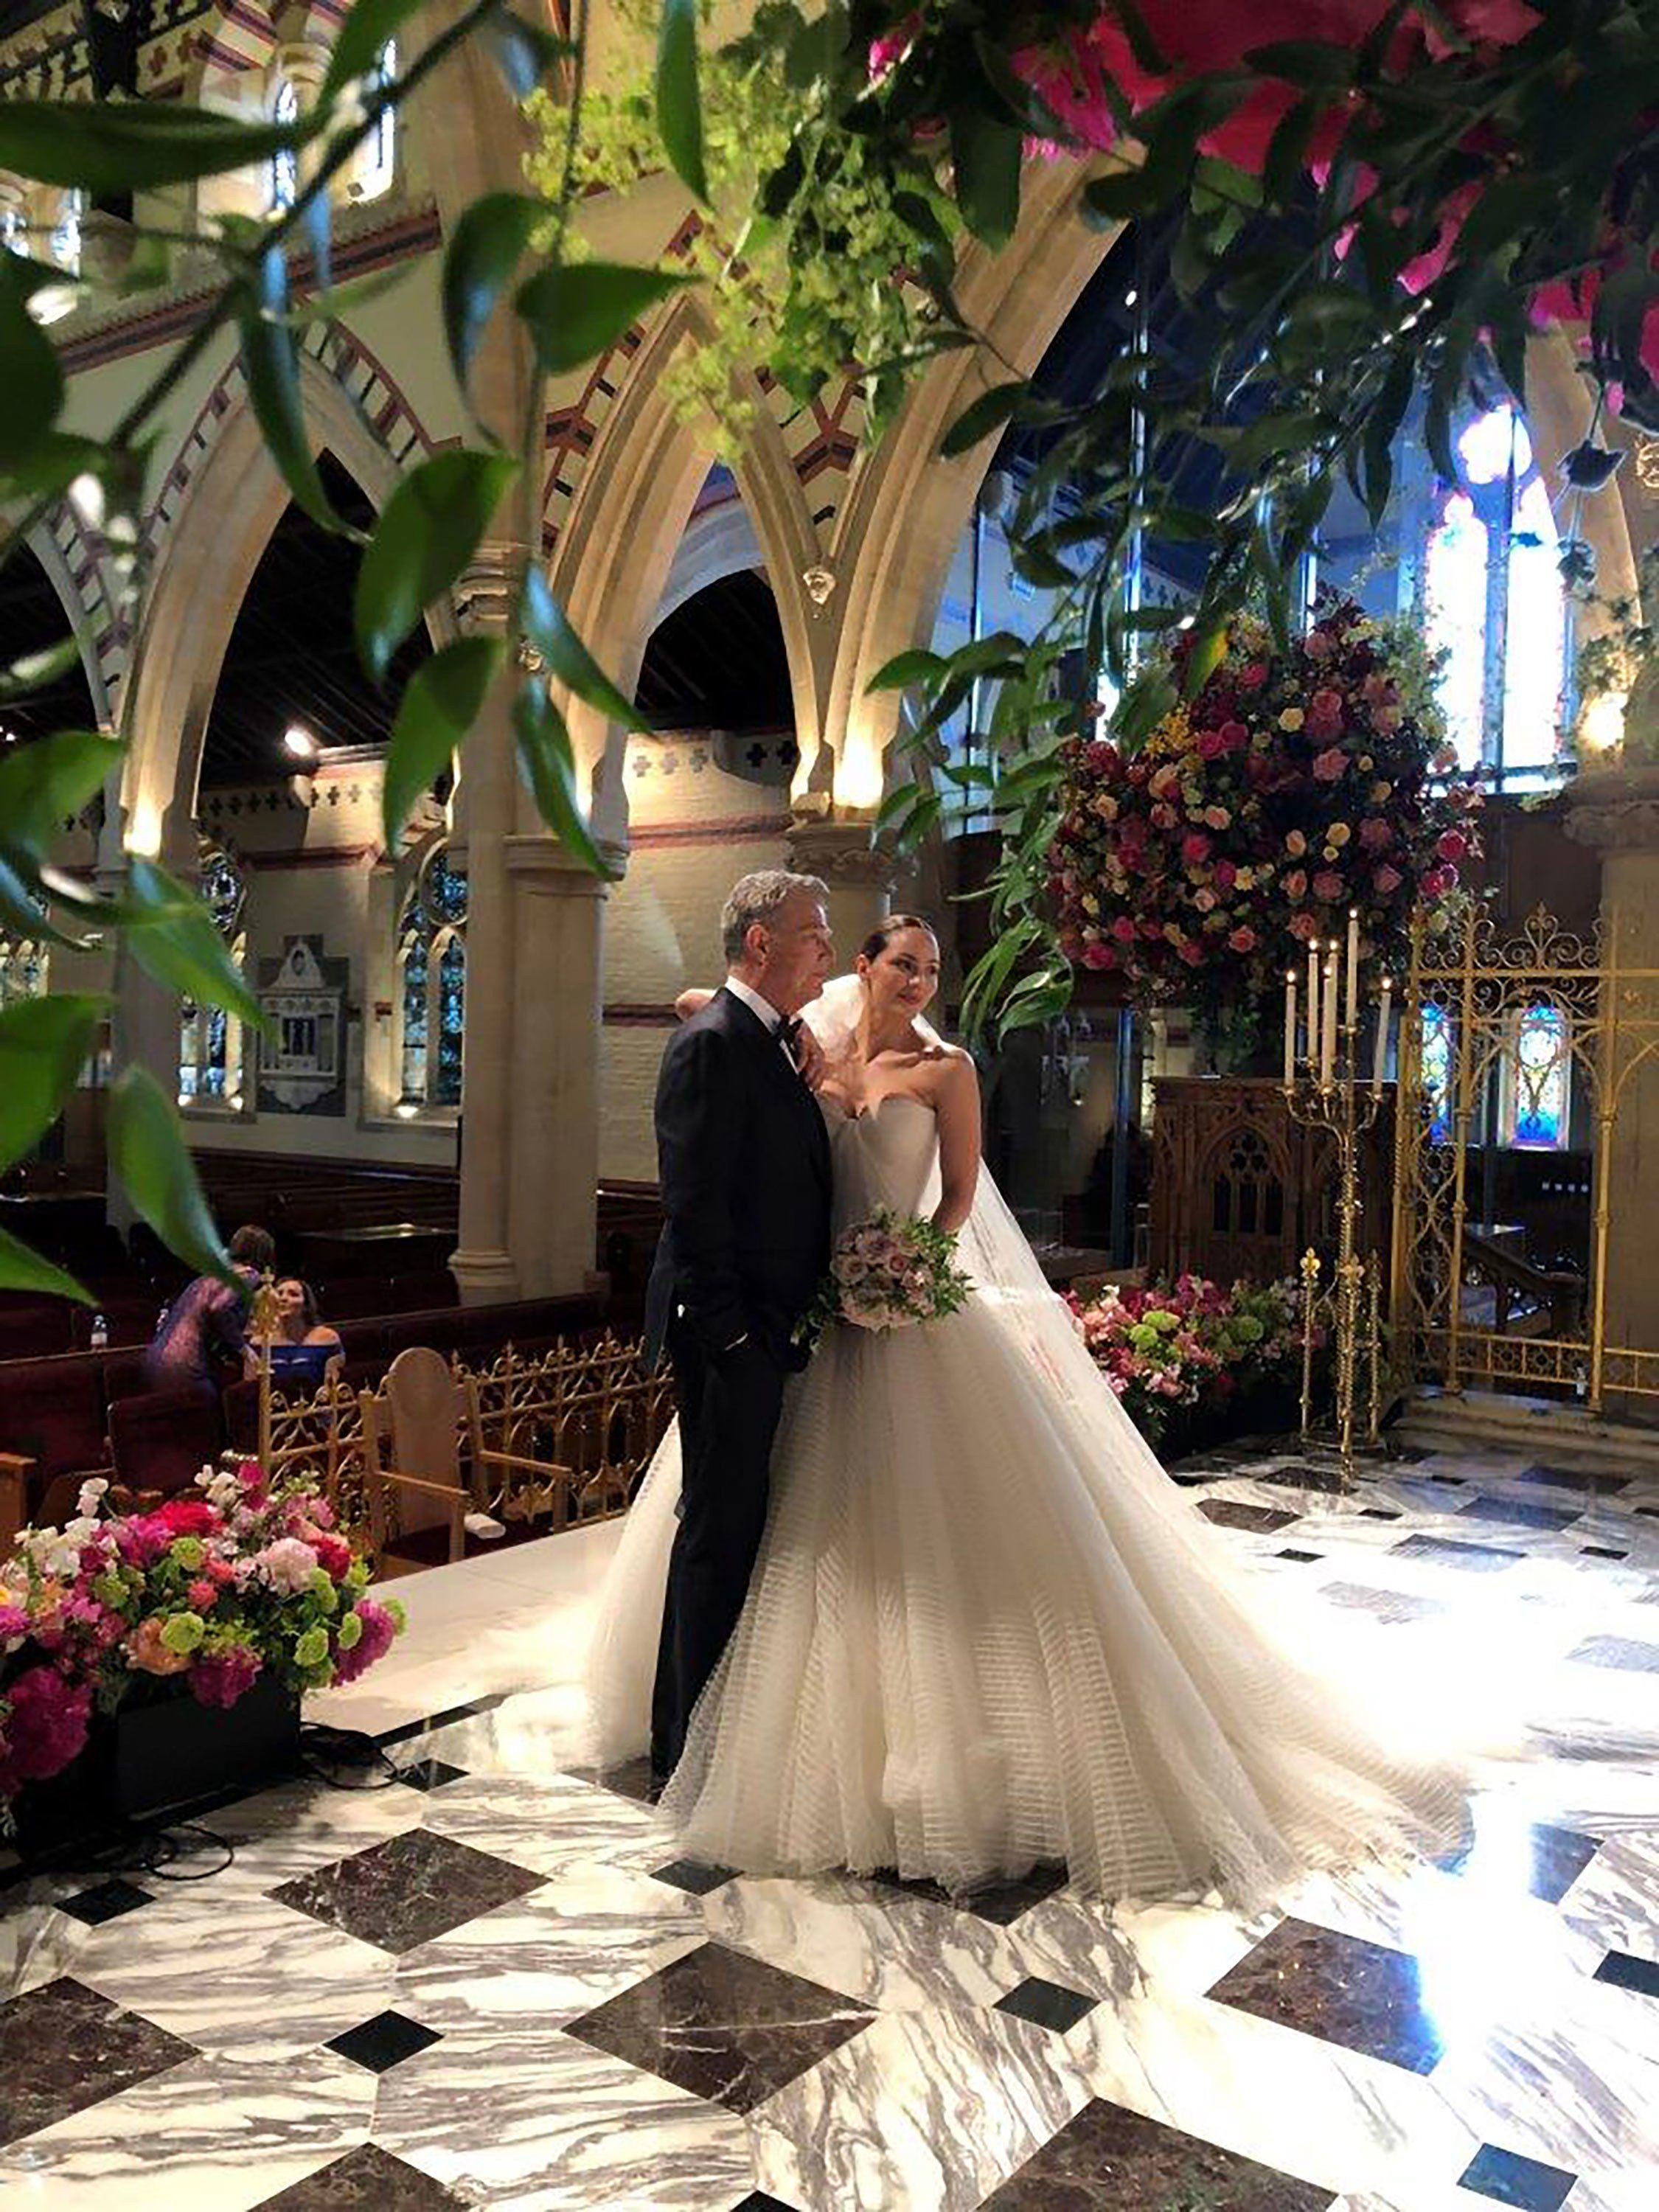 An Exclusive Look Inside Katharine Mcphee And David Foster S Wedding In London Zac Posen Wedding Gowns Zac Posen Wedding Dress Wedding Dresses